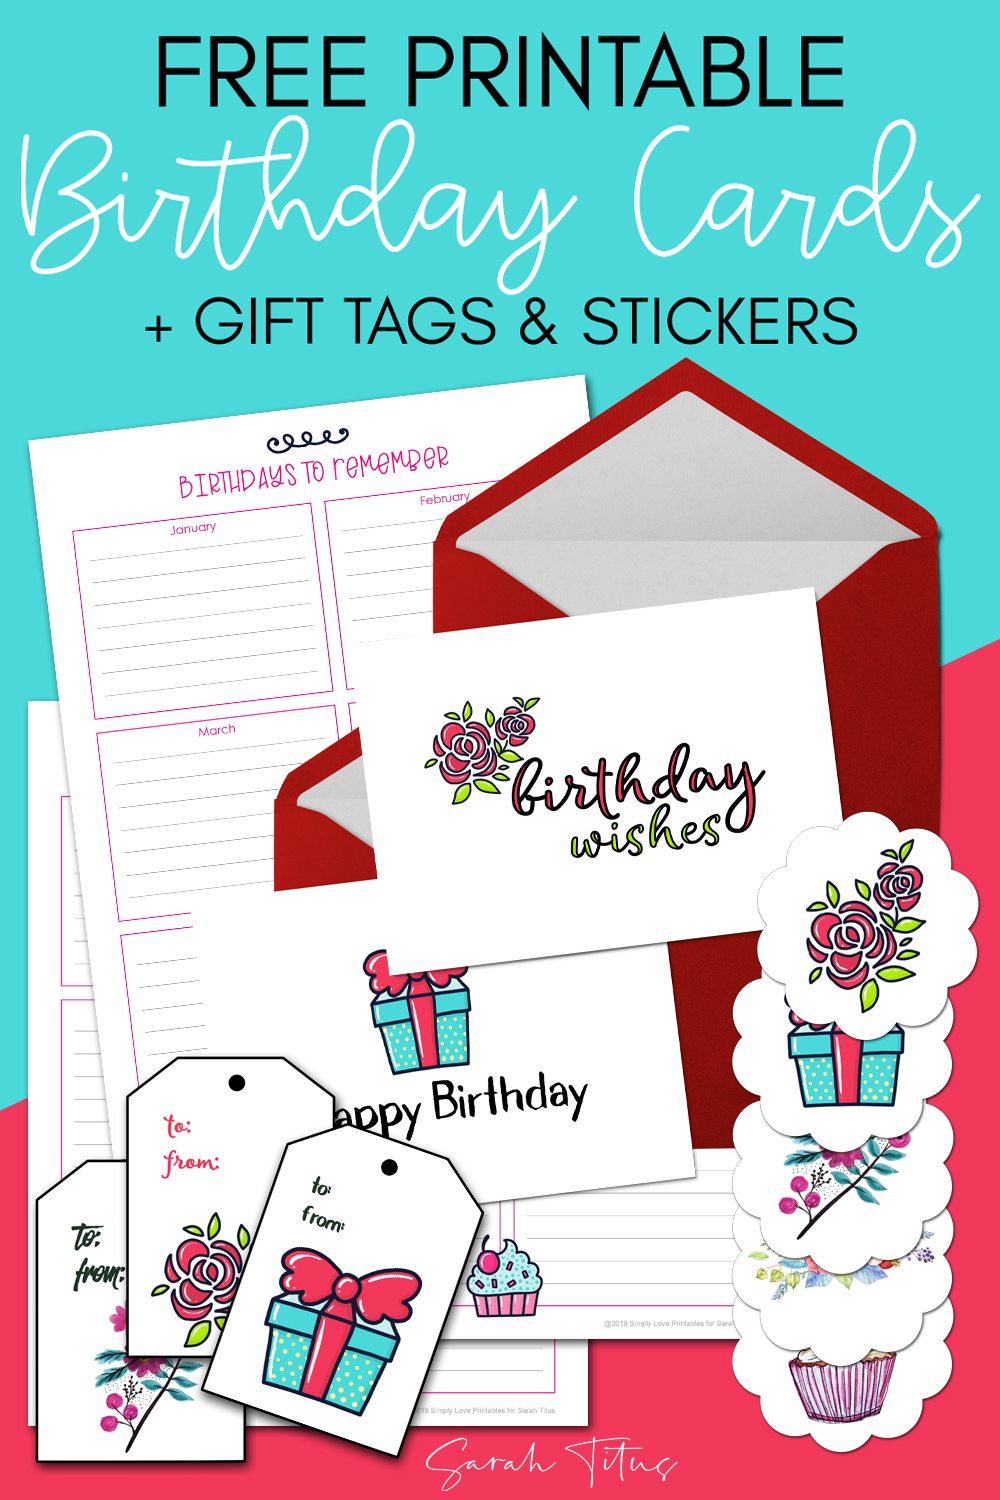 photo regarding Free Printable Stickers identify Cost-free Printable Birthday Playing cards + Present Tags Stickers - Sarah